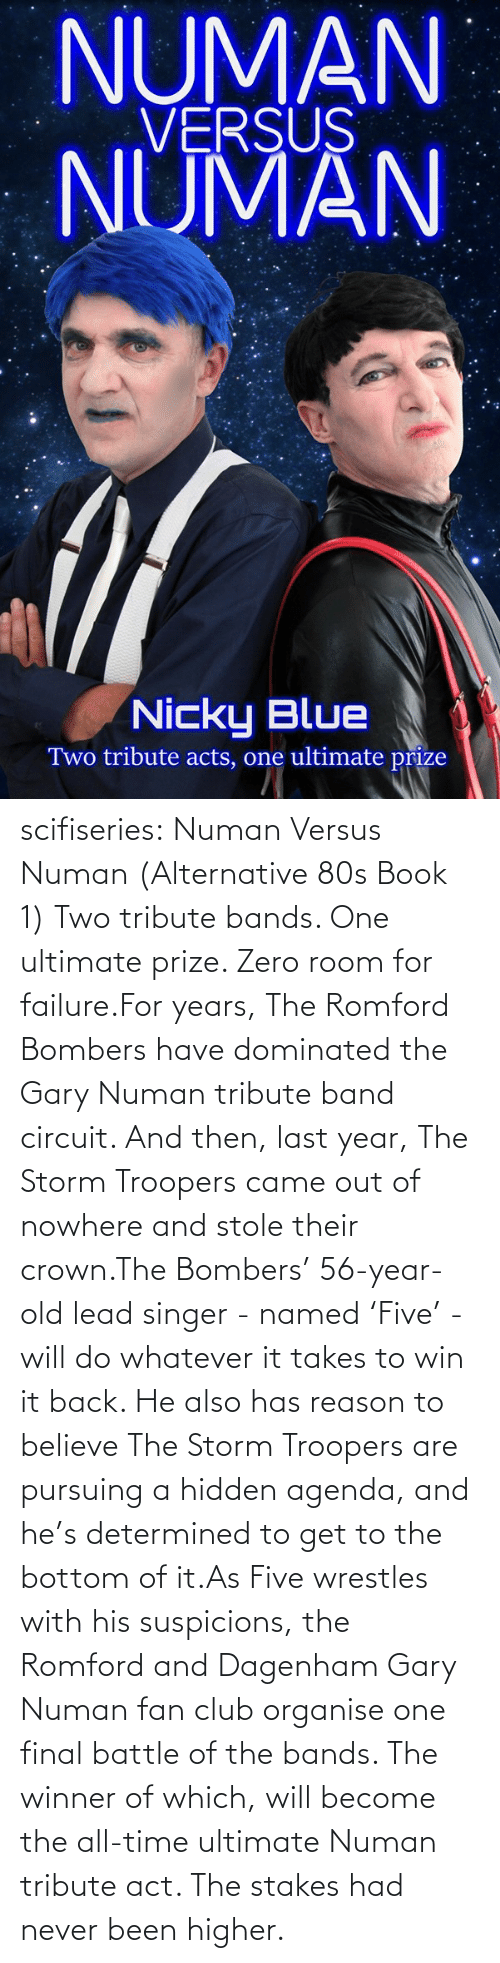 storm: NUMAN  VERSUS  NUMAN  Nicky Blue  Two tribute acts, one ultimate prize scifiseries:  Numan Versus Numan (Alternative 80s Book 1) Two tribute bands. One ultimate prize. Zero room for failure.For  years, The Romford Bombers have dominated the Gary Numan tribute band  circuit. And then, last year, The Storm Troopers came out of nowhere and  stole their crown.The Bombers' 56-year-old lead singer - named  'Five' - will do whatever it takes to win it back. He also has reason to  believe The Storm Troopers are pursuing a hidden agenda, and he's  determined to get to the bottom of it.As Five wrestles with his  suspicions, the Romford and Dagenham Gary Numan fan club organise one  final battle of the bands. The winner of which, will become the all-time  ultimate Numan tribute act. The stakes had never been higher.